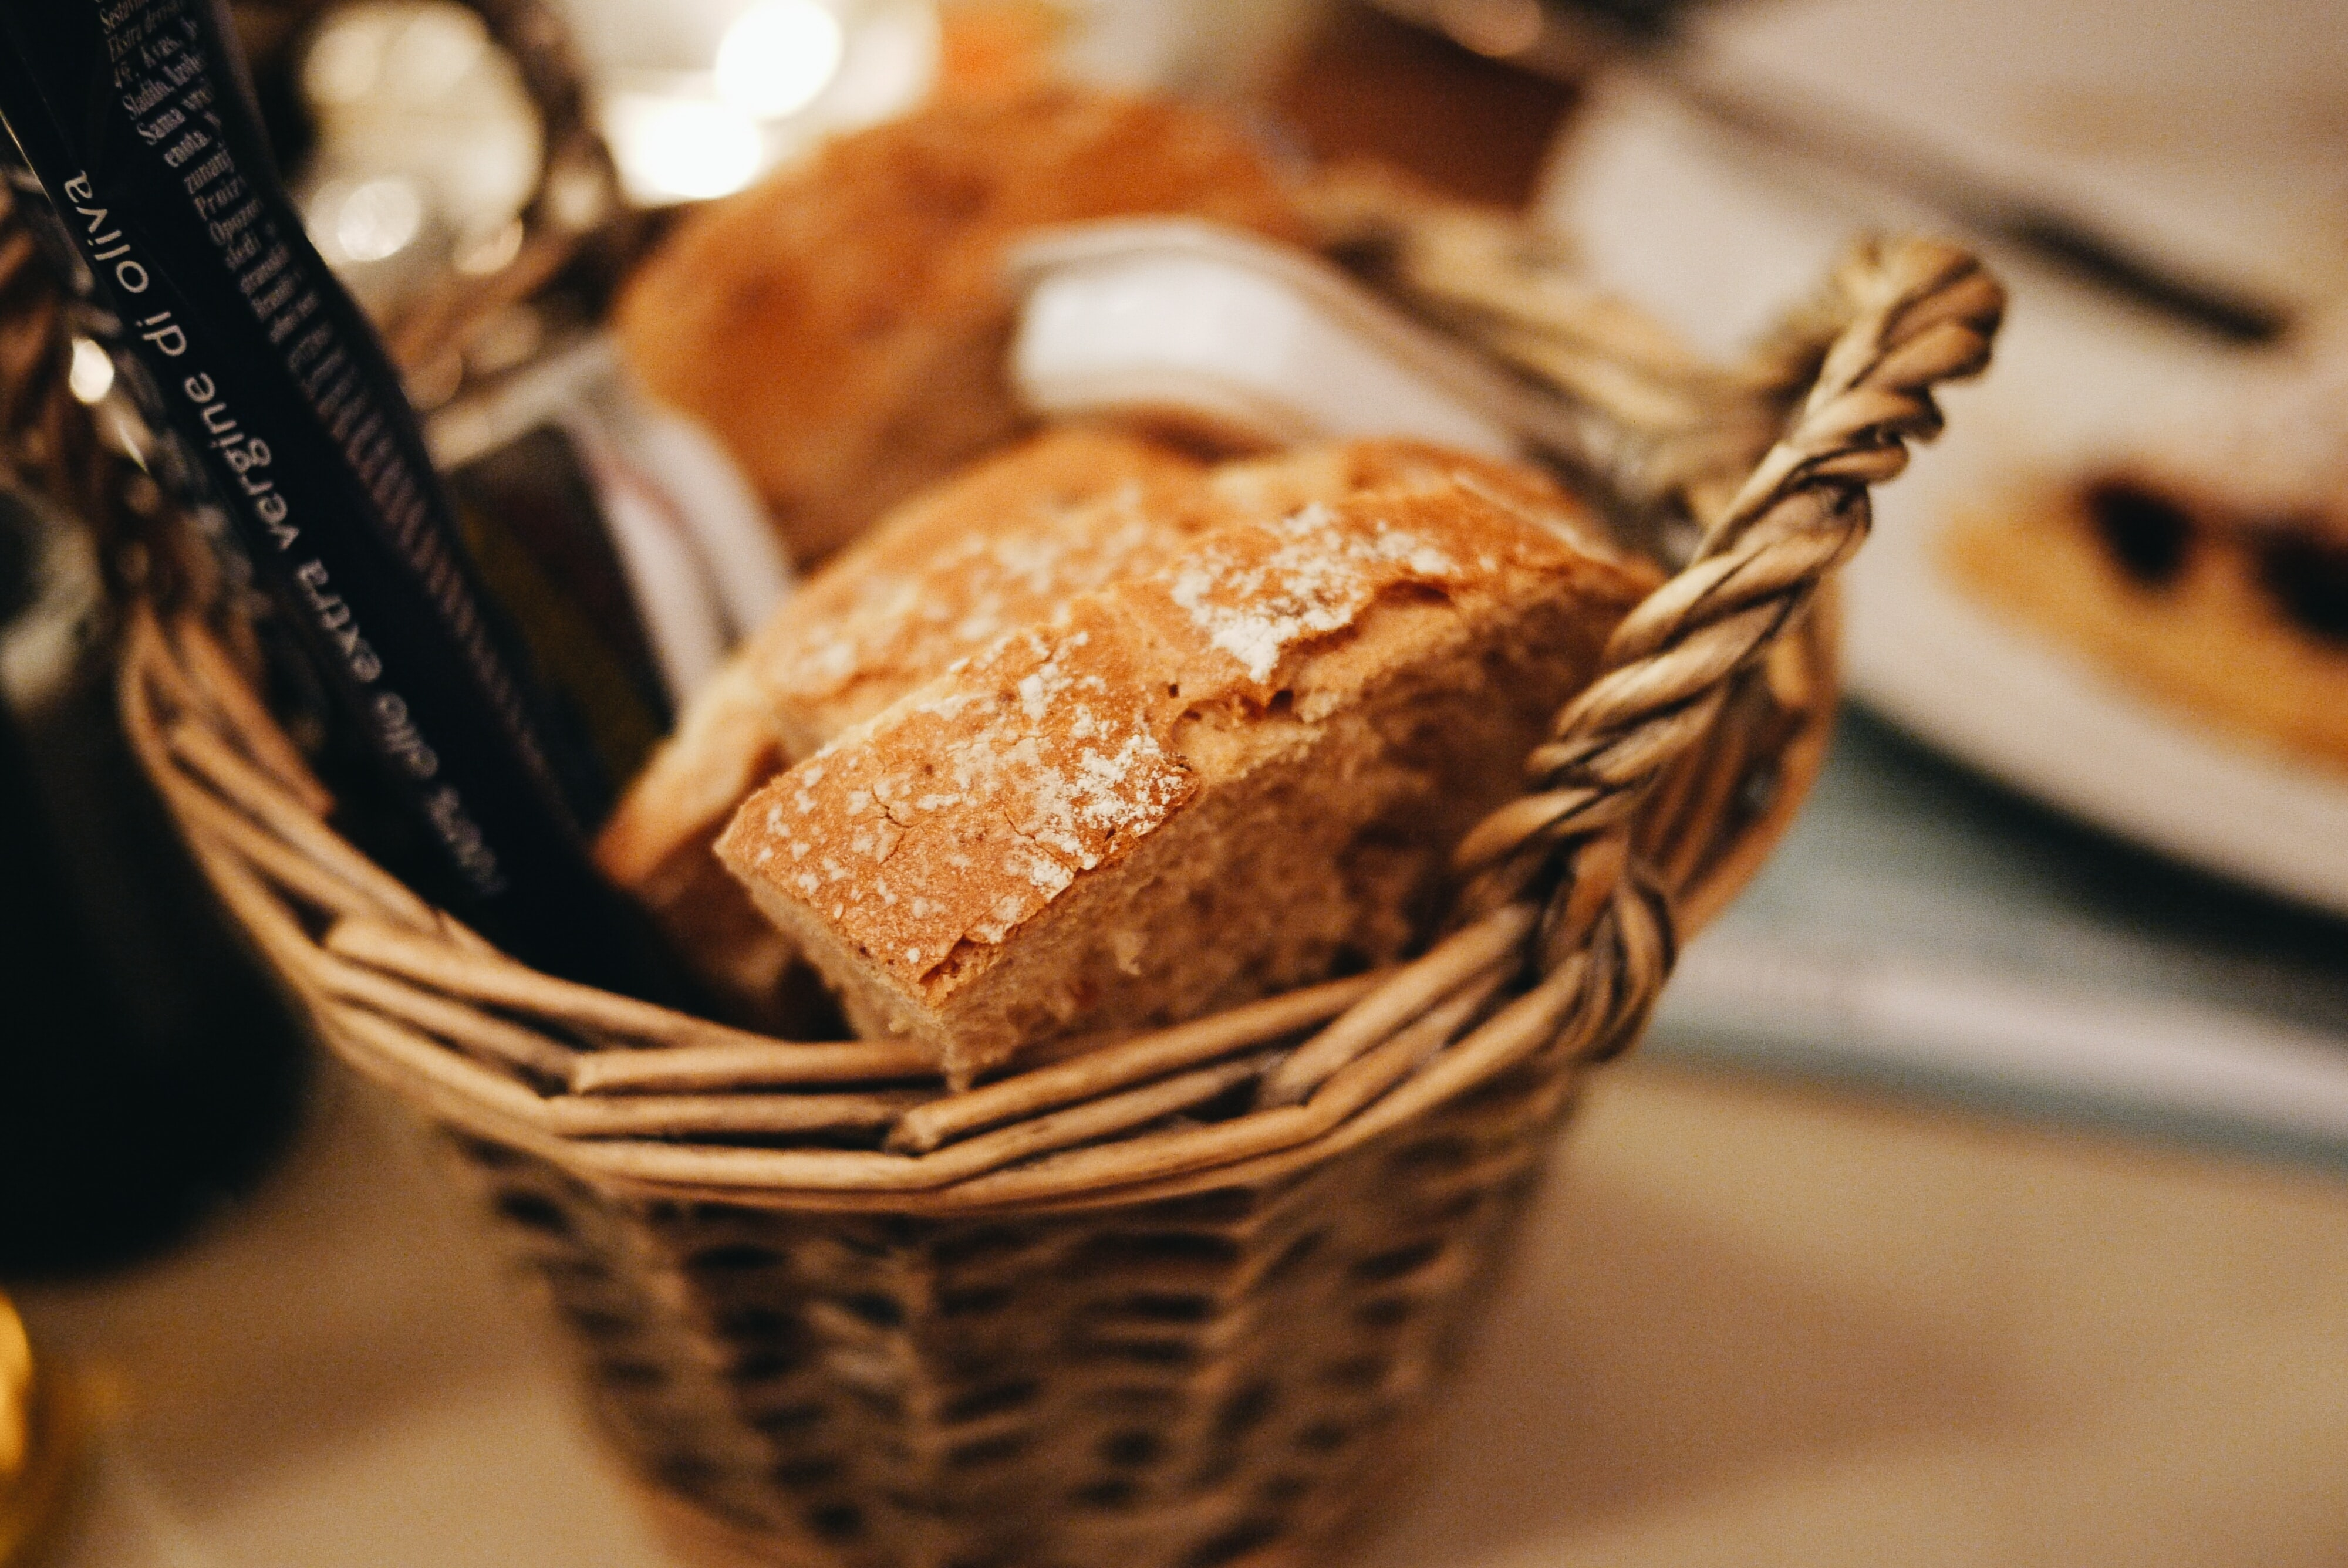 Basket of bread on a table at a restaurant